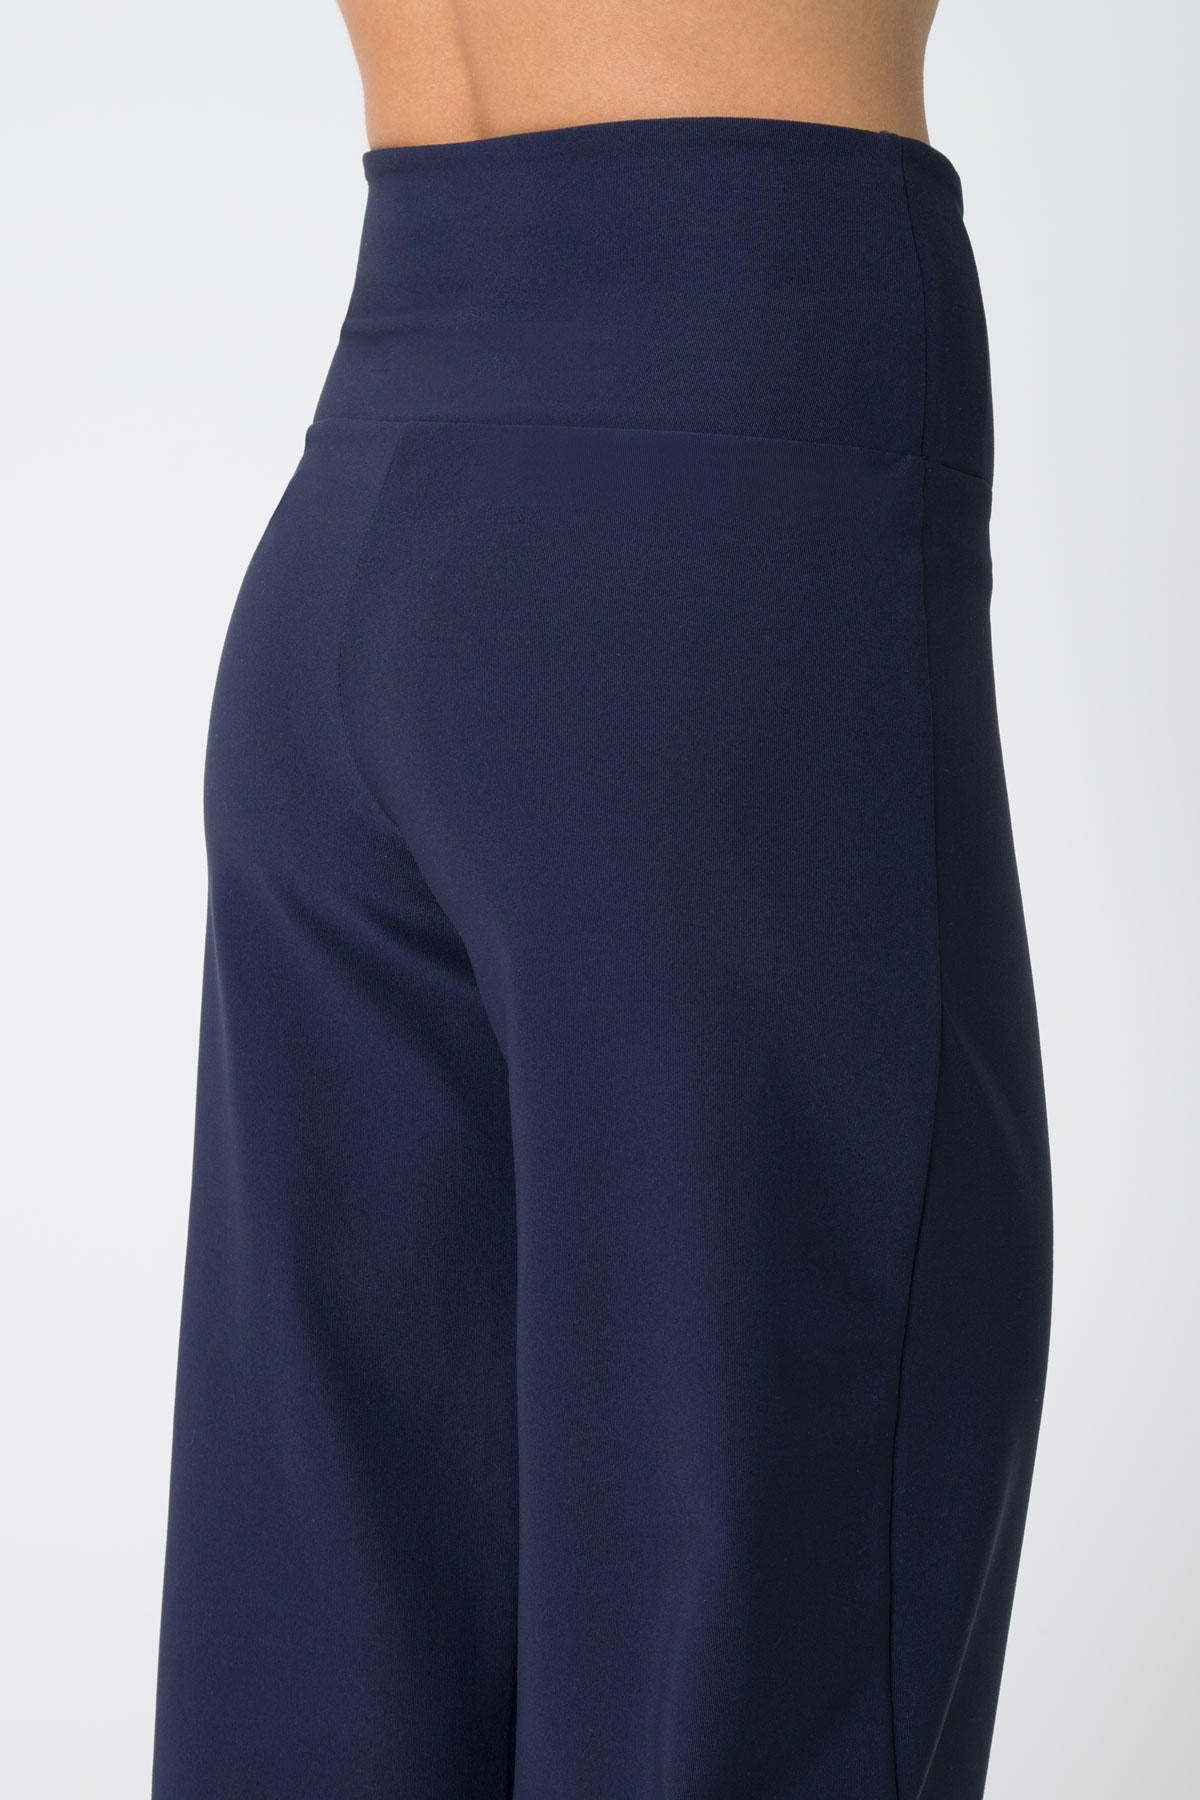 MPG Day to Night Culottes - Navy Sky